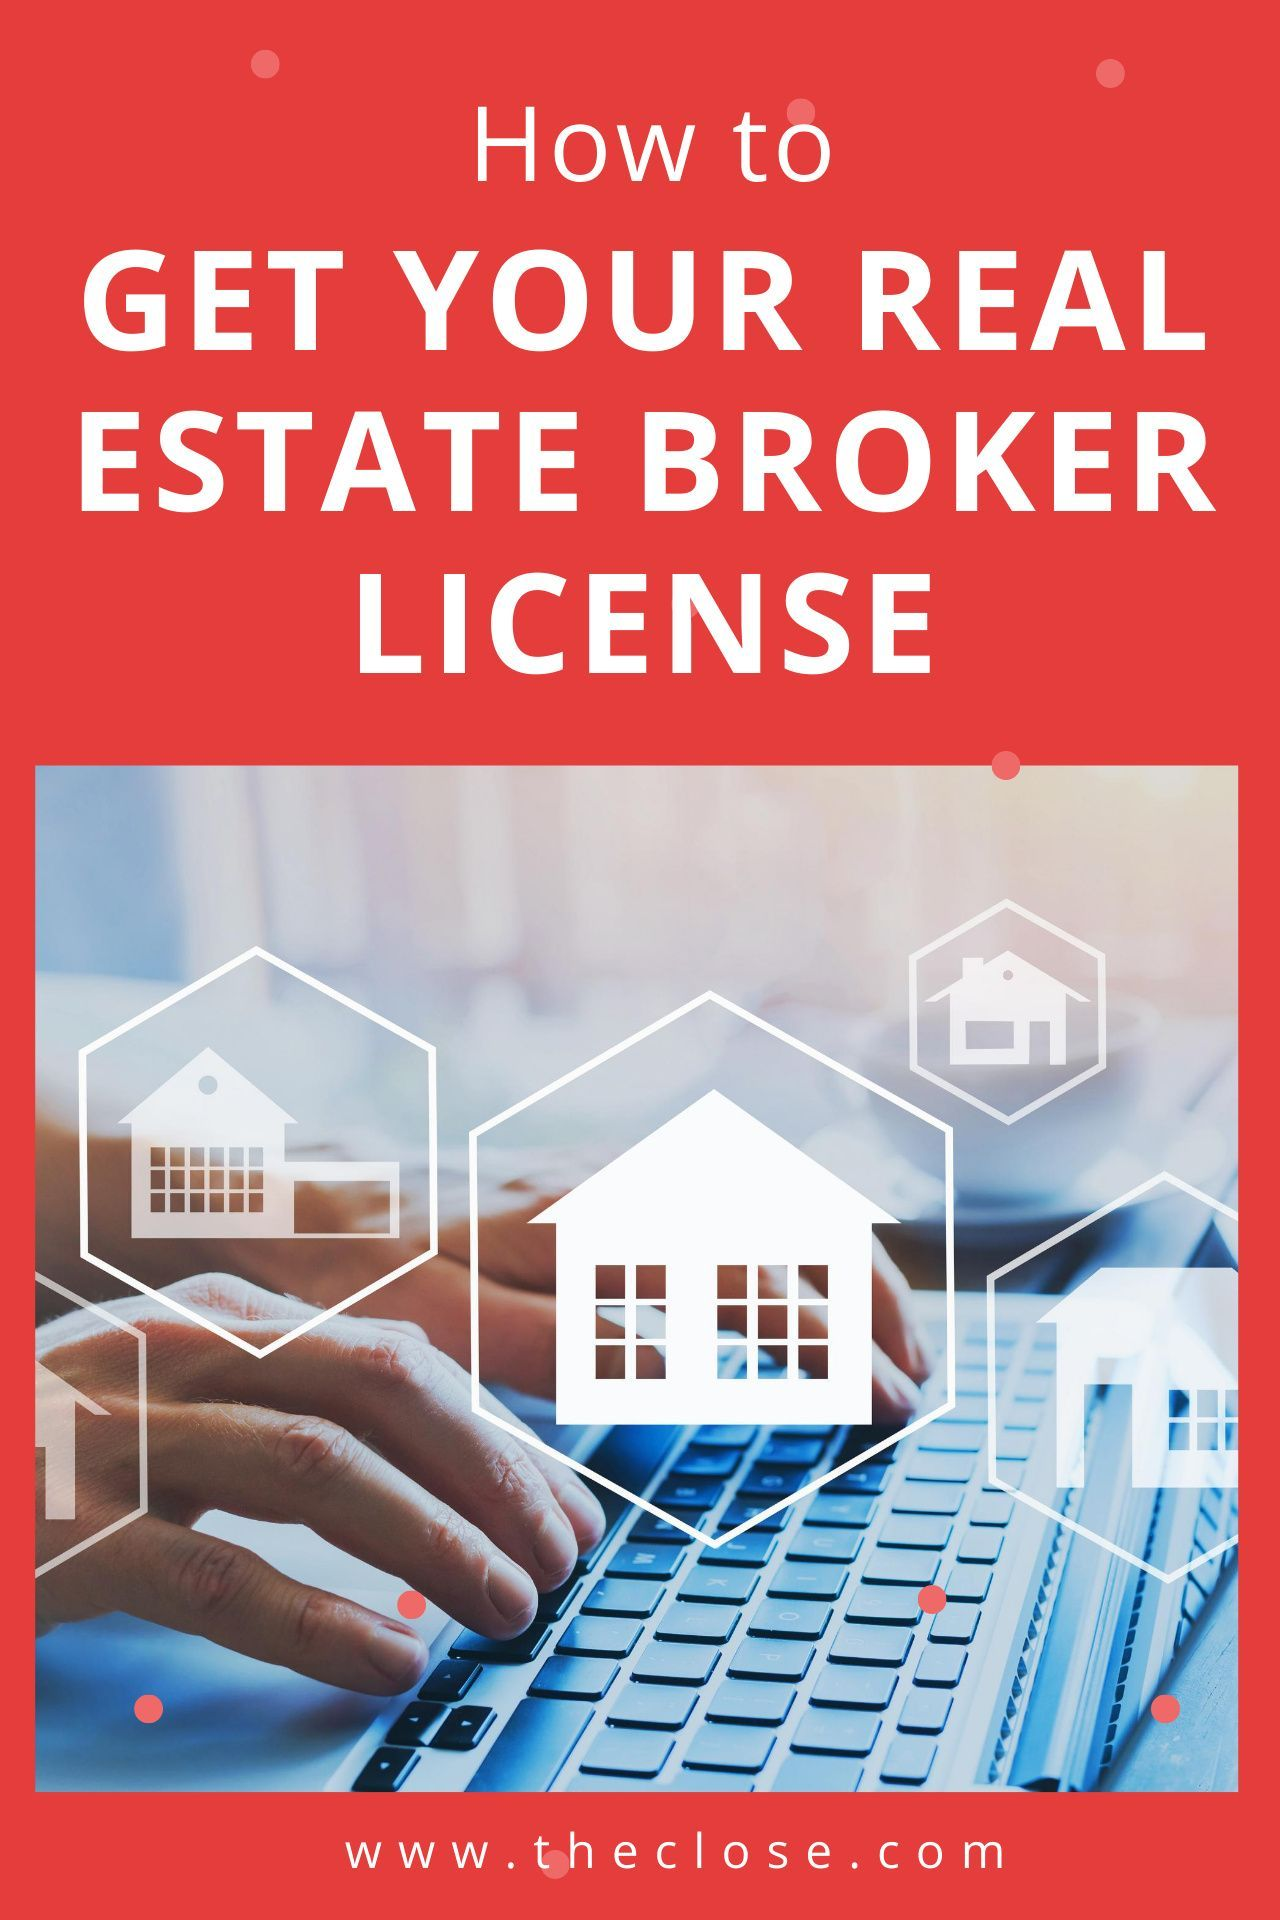 How To Get Your Real Estate Broker License In 2020 Without The Stress The Close In 2020 Real Estate Broker License Real Estate Broker Real Estate Education